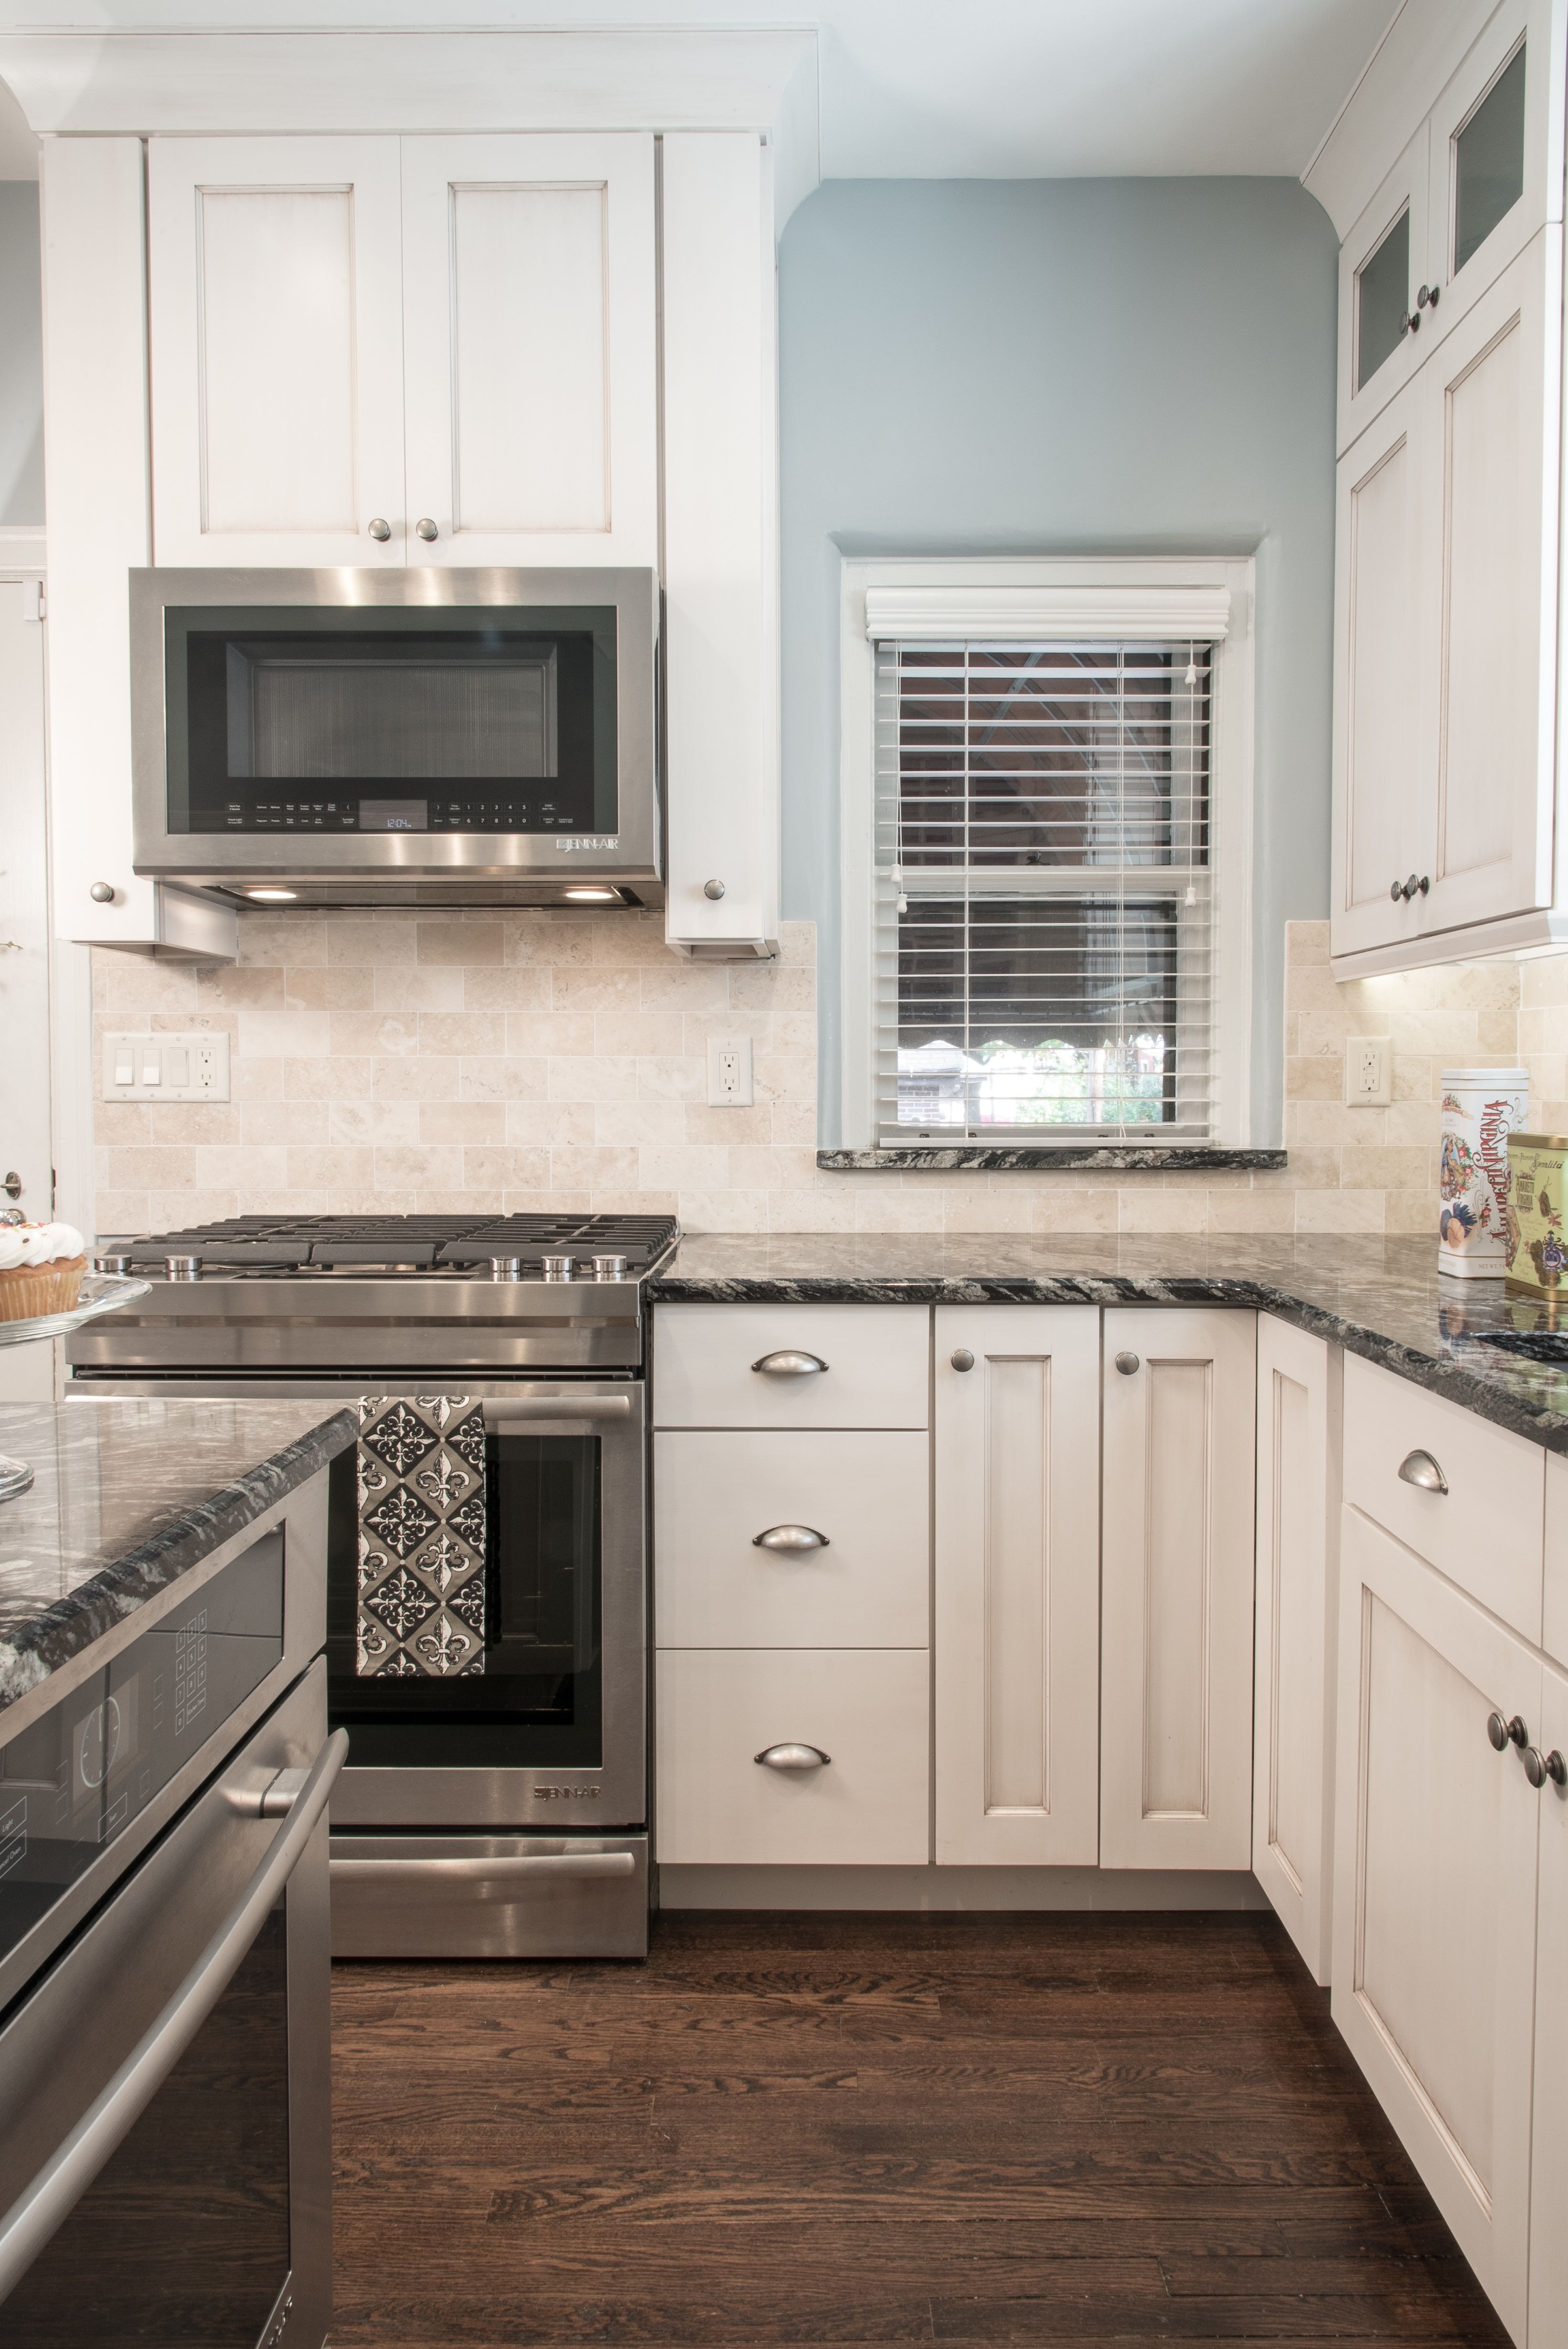 Kitchen remodel ideas new countertops and cabinets haughey kitchen from designer sandra carr